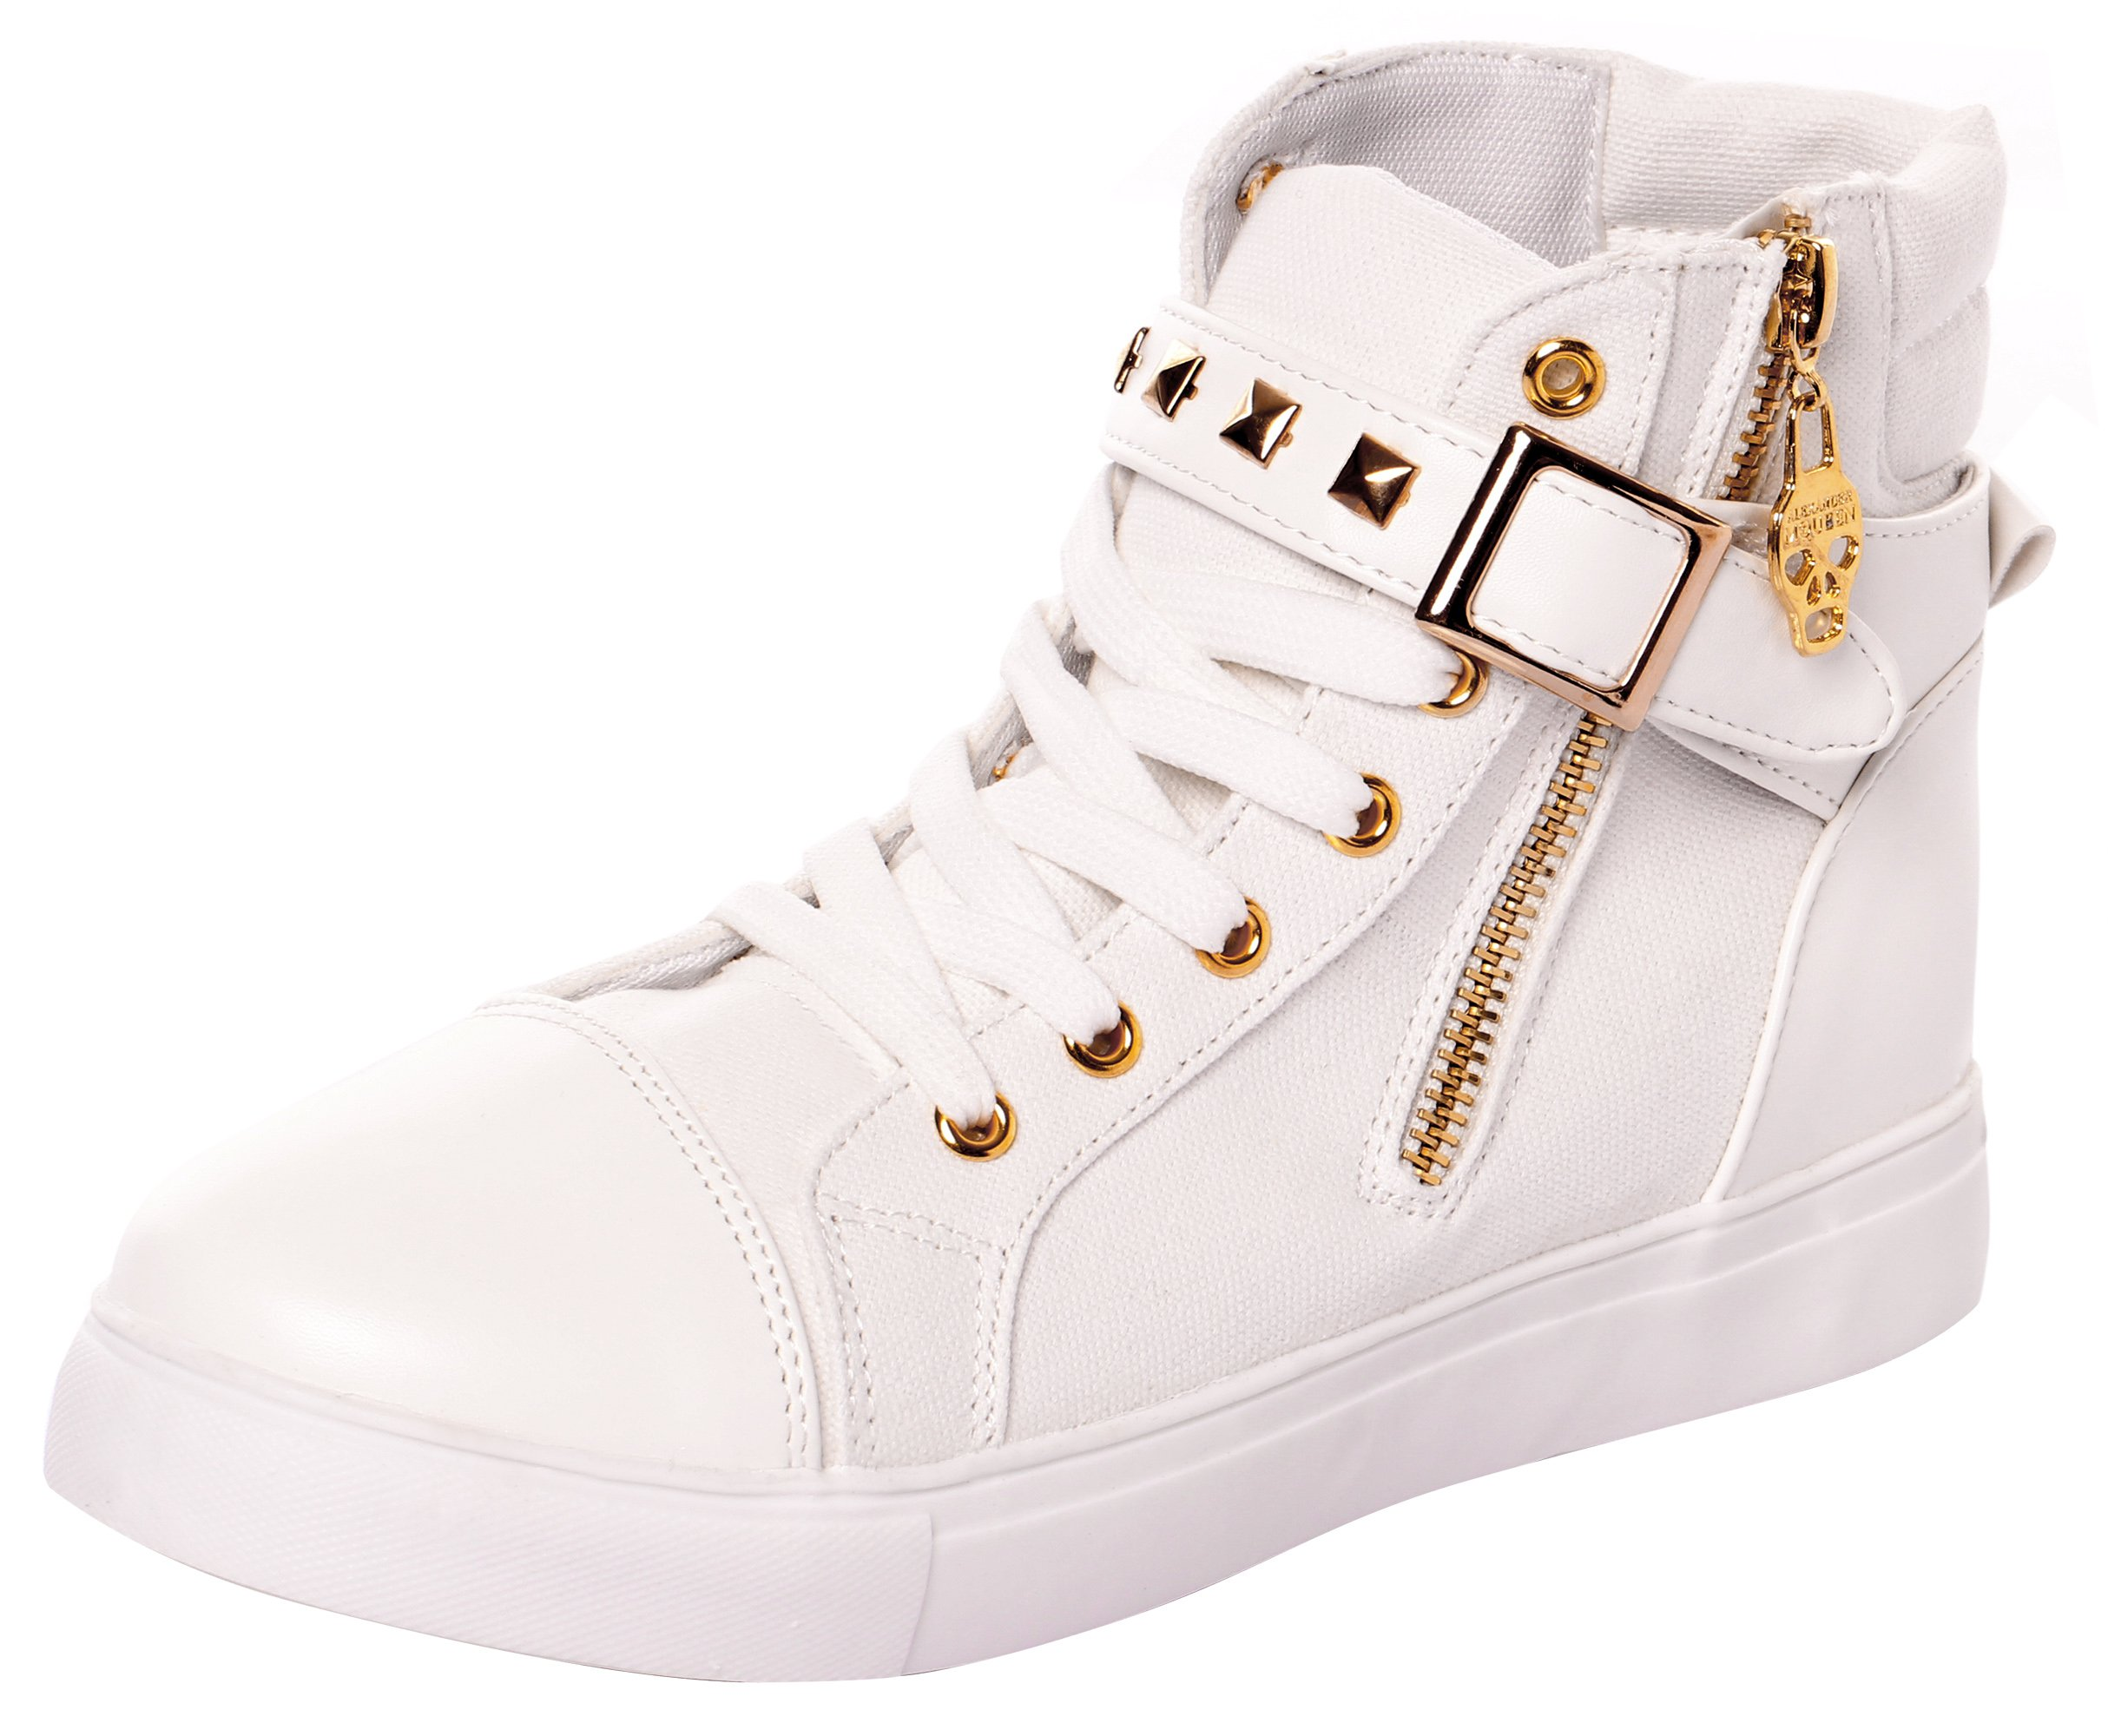 High Top Sneakers for Women and Girls with Lace-up in Canvas and Leather(5.5 B(M) US,White) (5.5 B(M) US, White-1)